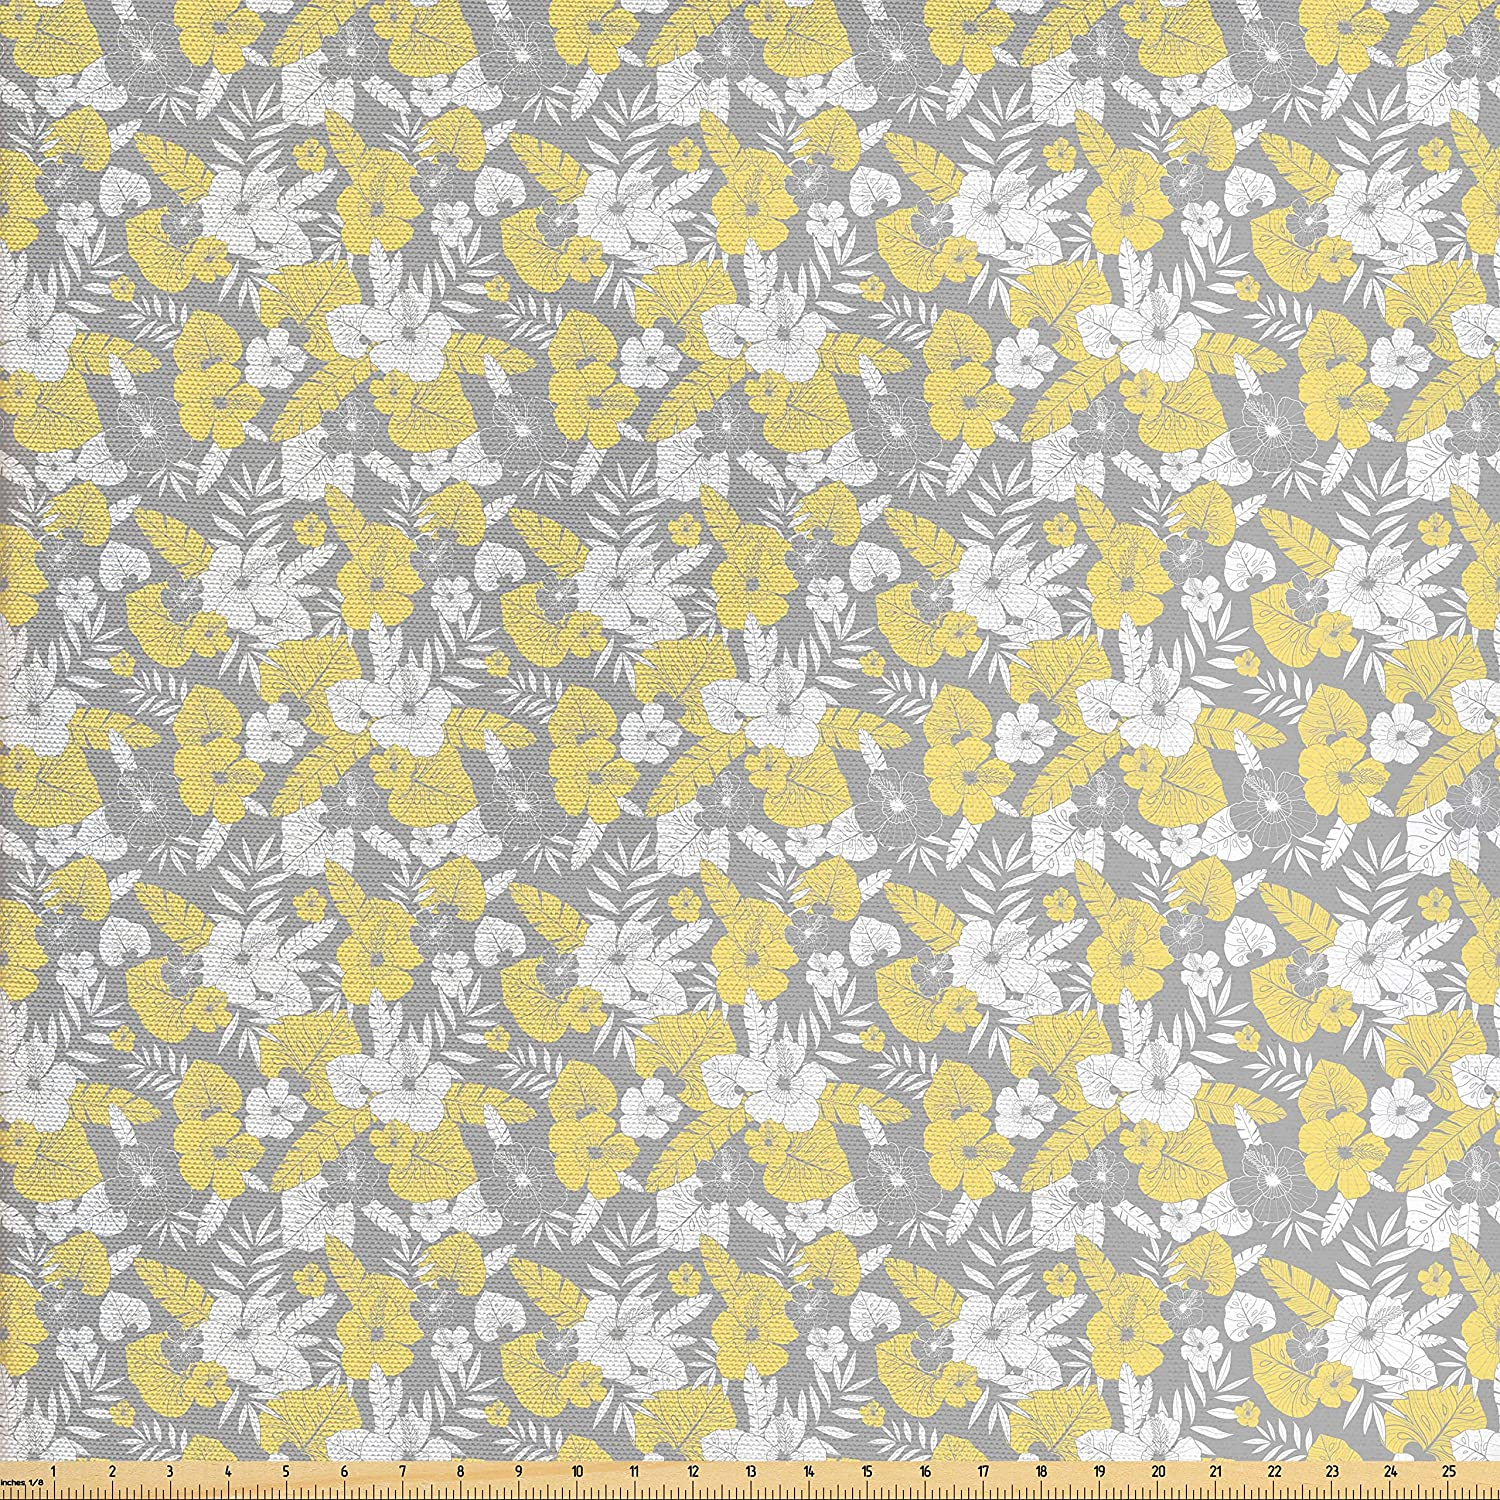 Ambesonne Luau Fabric by The Yard, Hawaiian Vegetation Flowers Abstract Summertime Botanical Composition, Decorative Fabric for Upholstery and Home Accents, Pale Yellow Pale Grey White